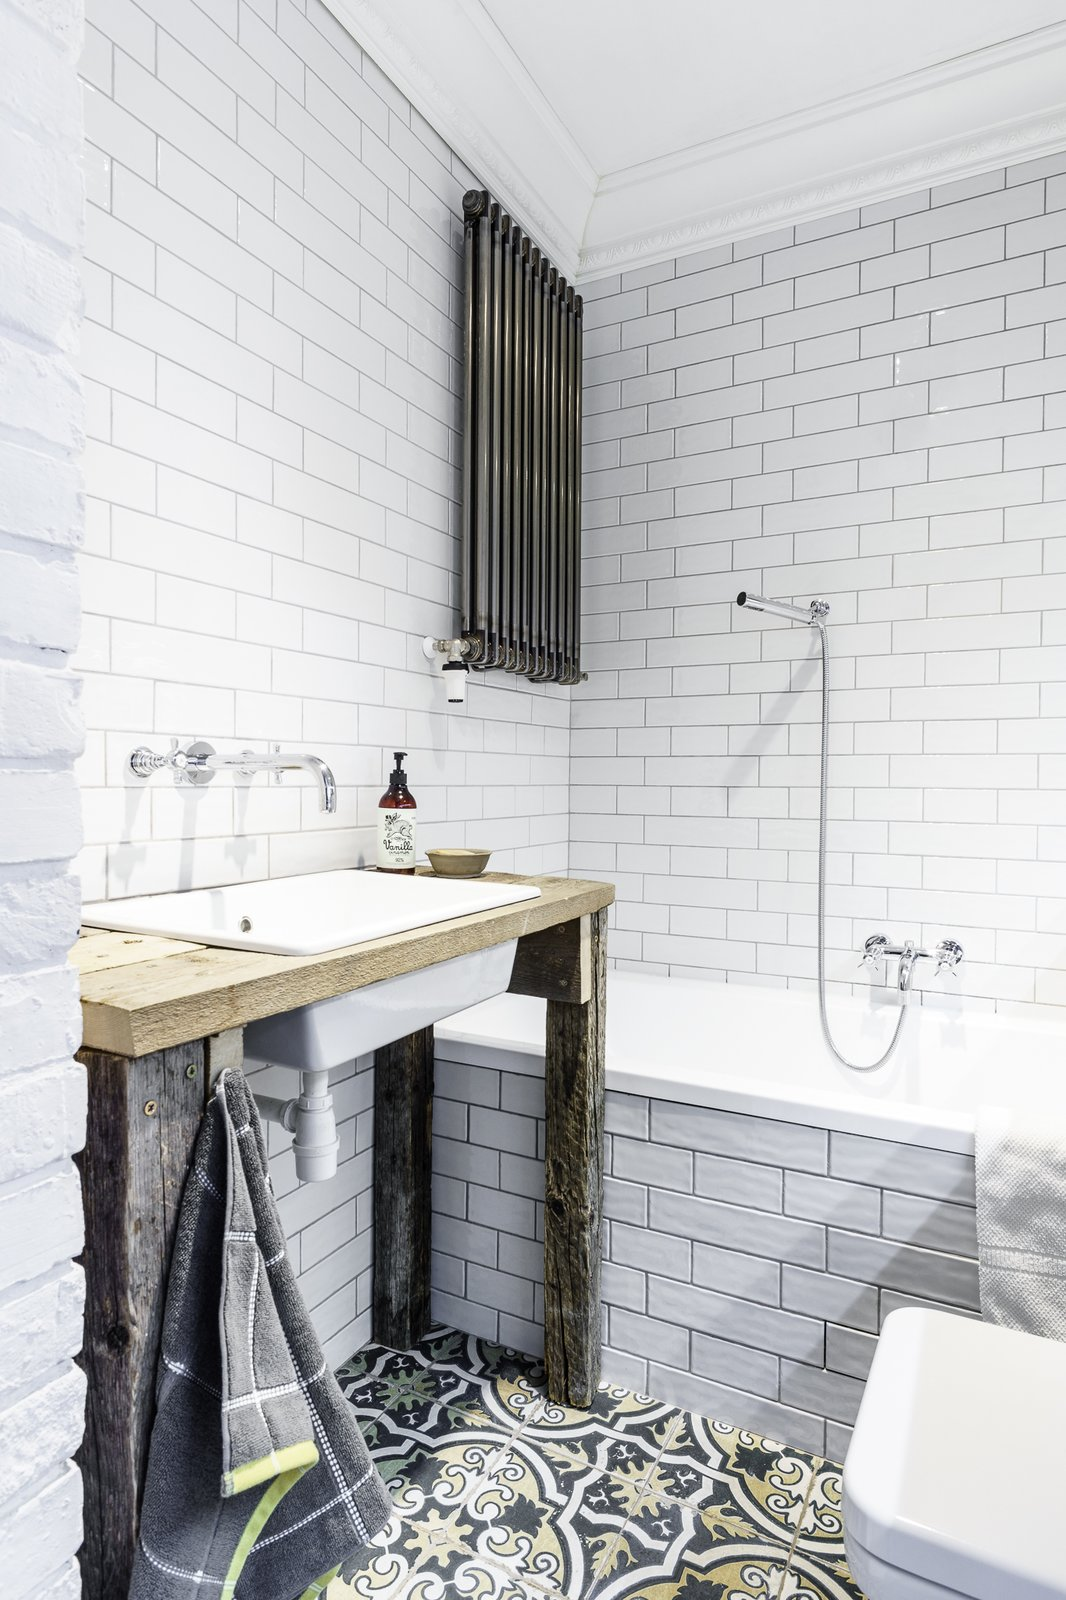 Tagged: Bath Room, Pedestal Sink, Soaking Tub, Wood Counter, Drop In Sink, Subway Tile Wall, and Ceramic Tile Wall.  Loft in Poland by Lucyna Kołodziejska | INTERIORS FACTORY